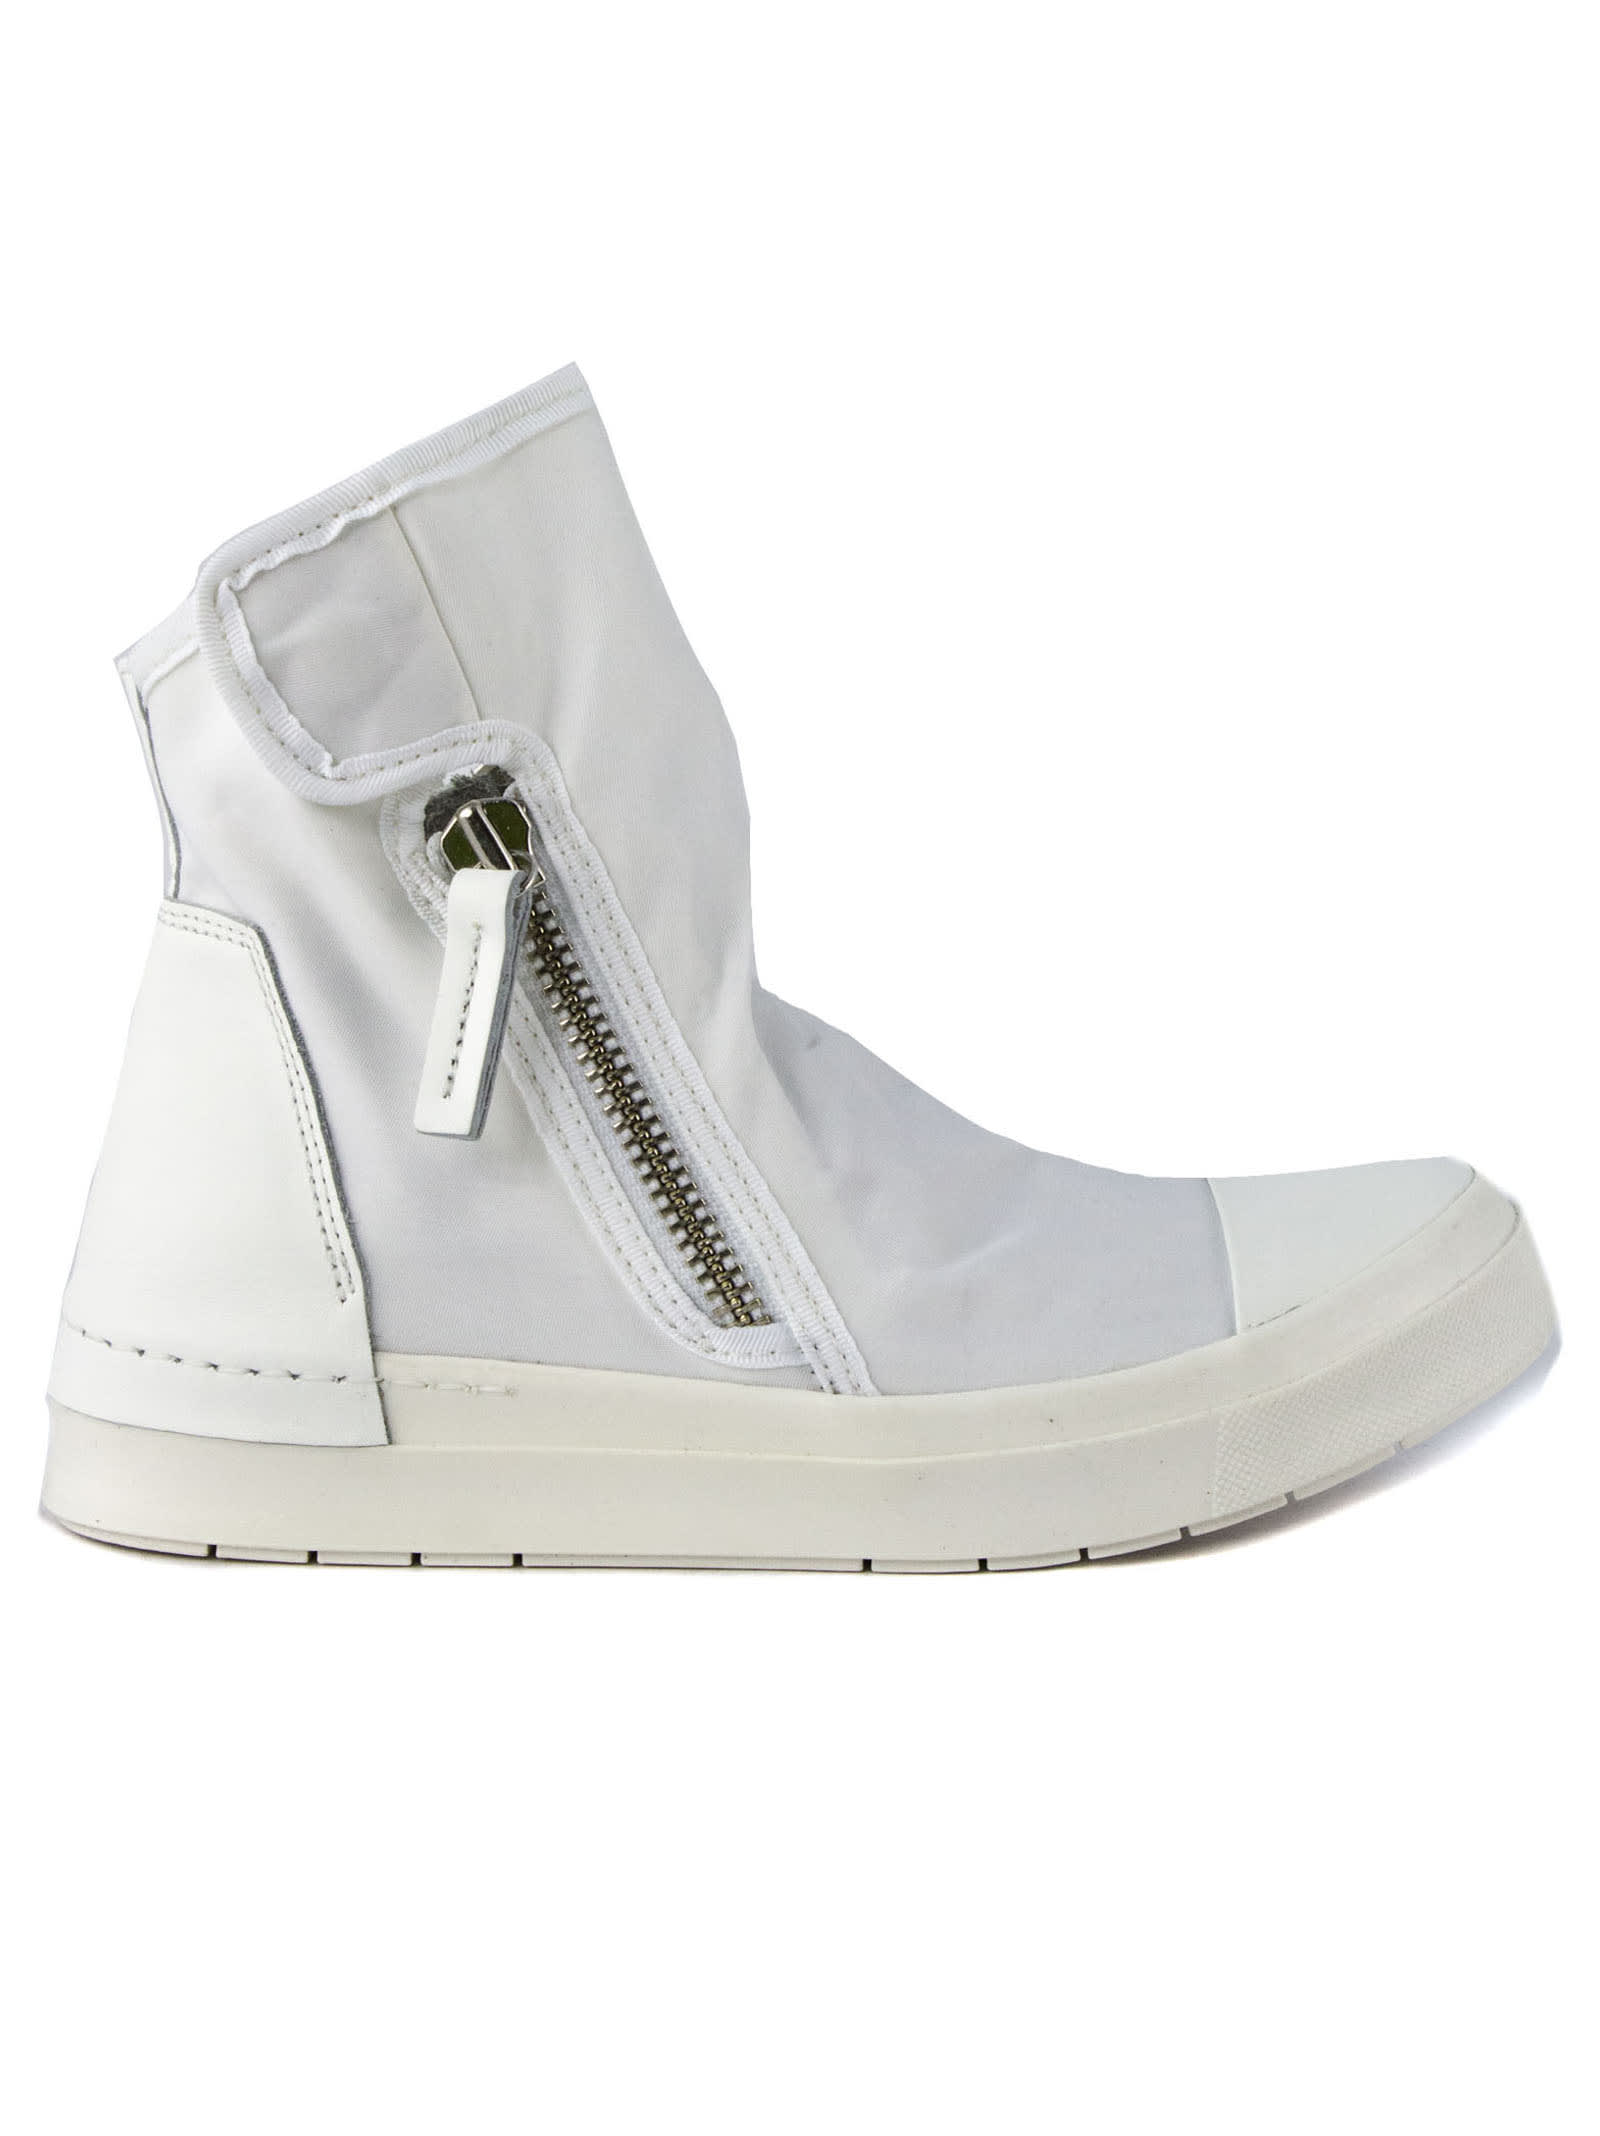 High-top Sneaker In White